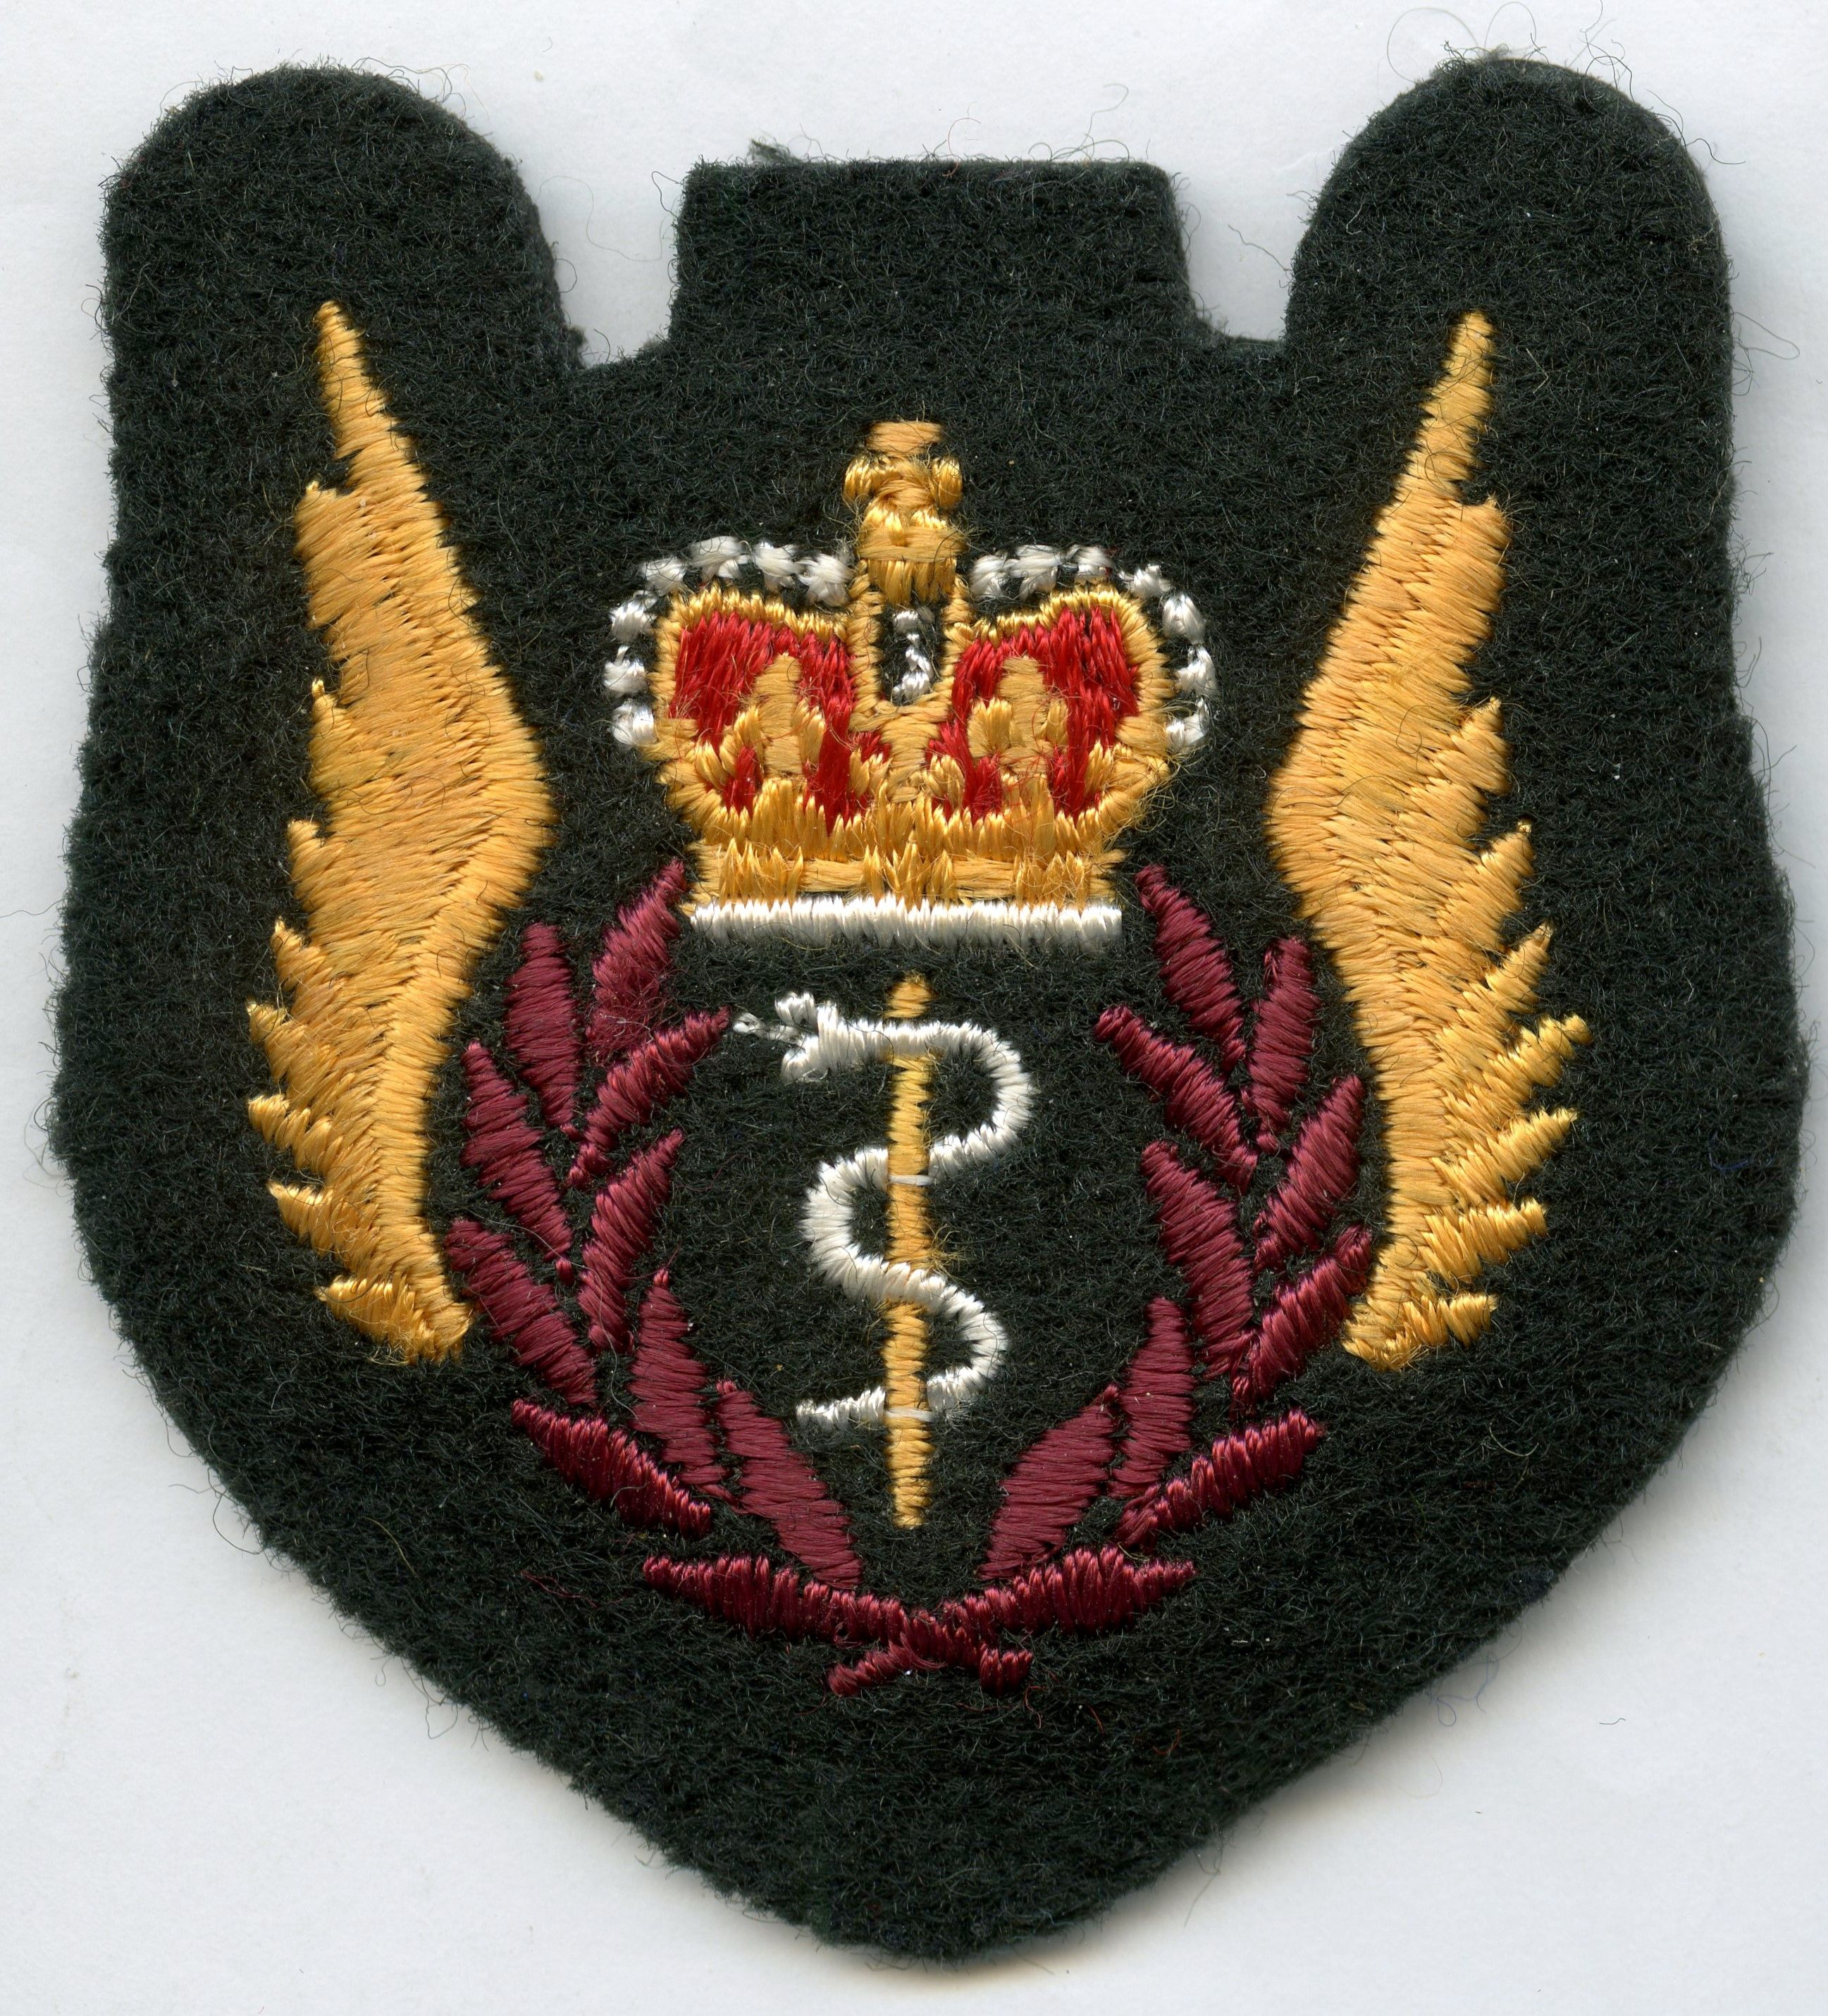 Flight Surgeon Patch in 2020 Patches, Christmas